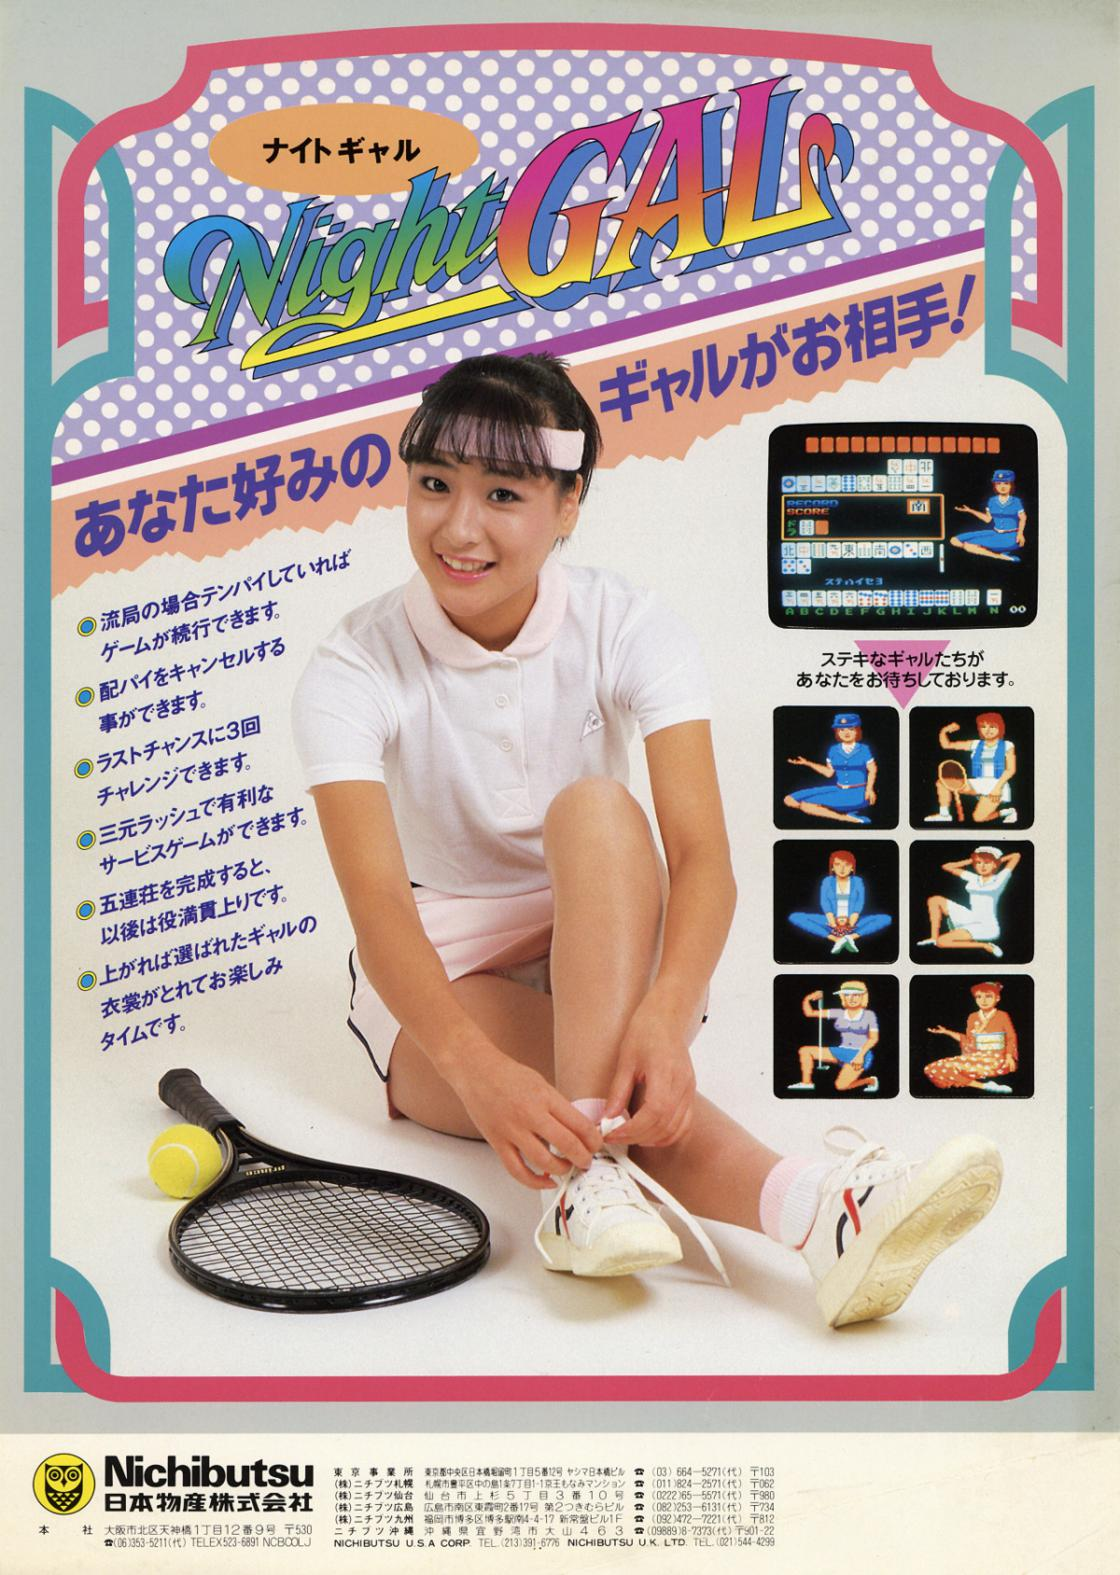 publicites-japonaises-jeux-video-1980-6.jpg